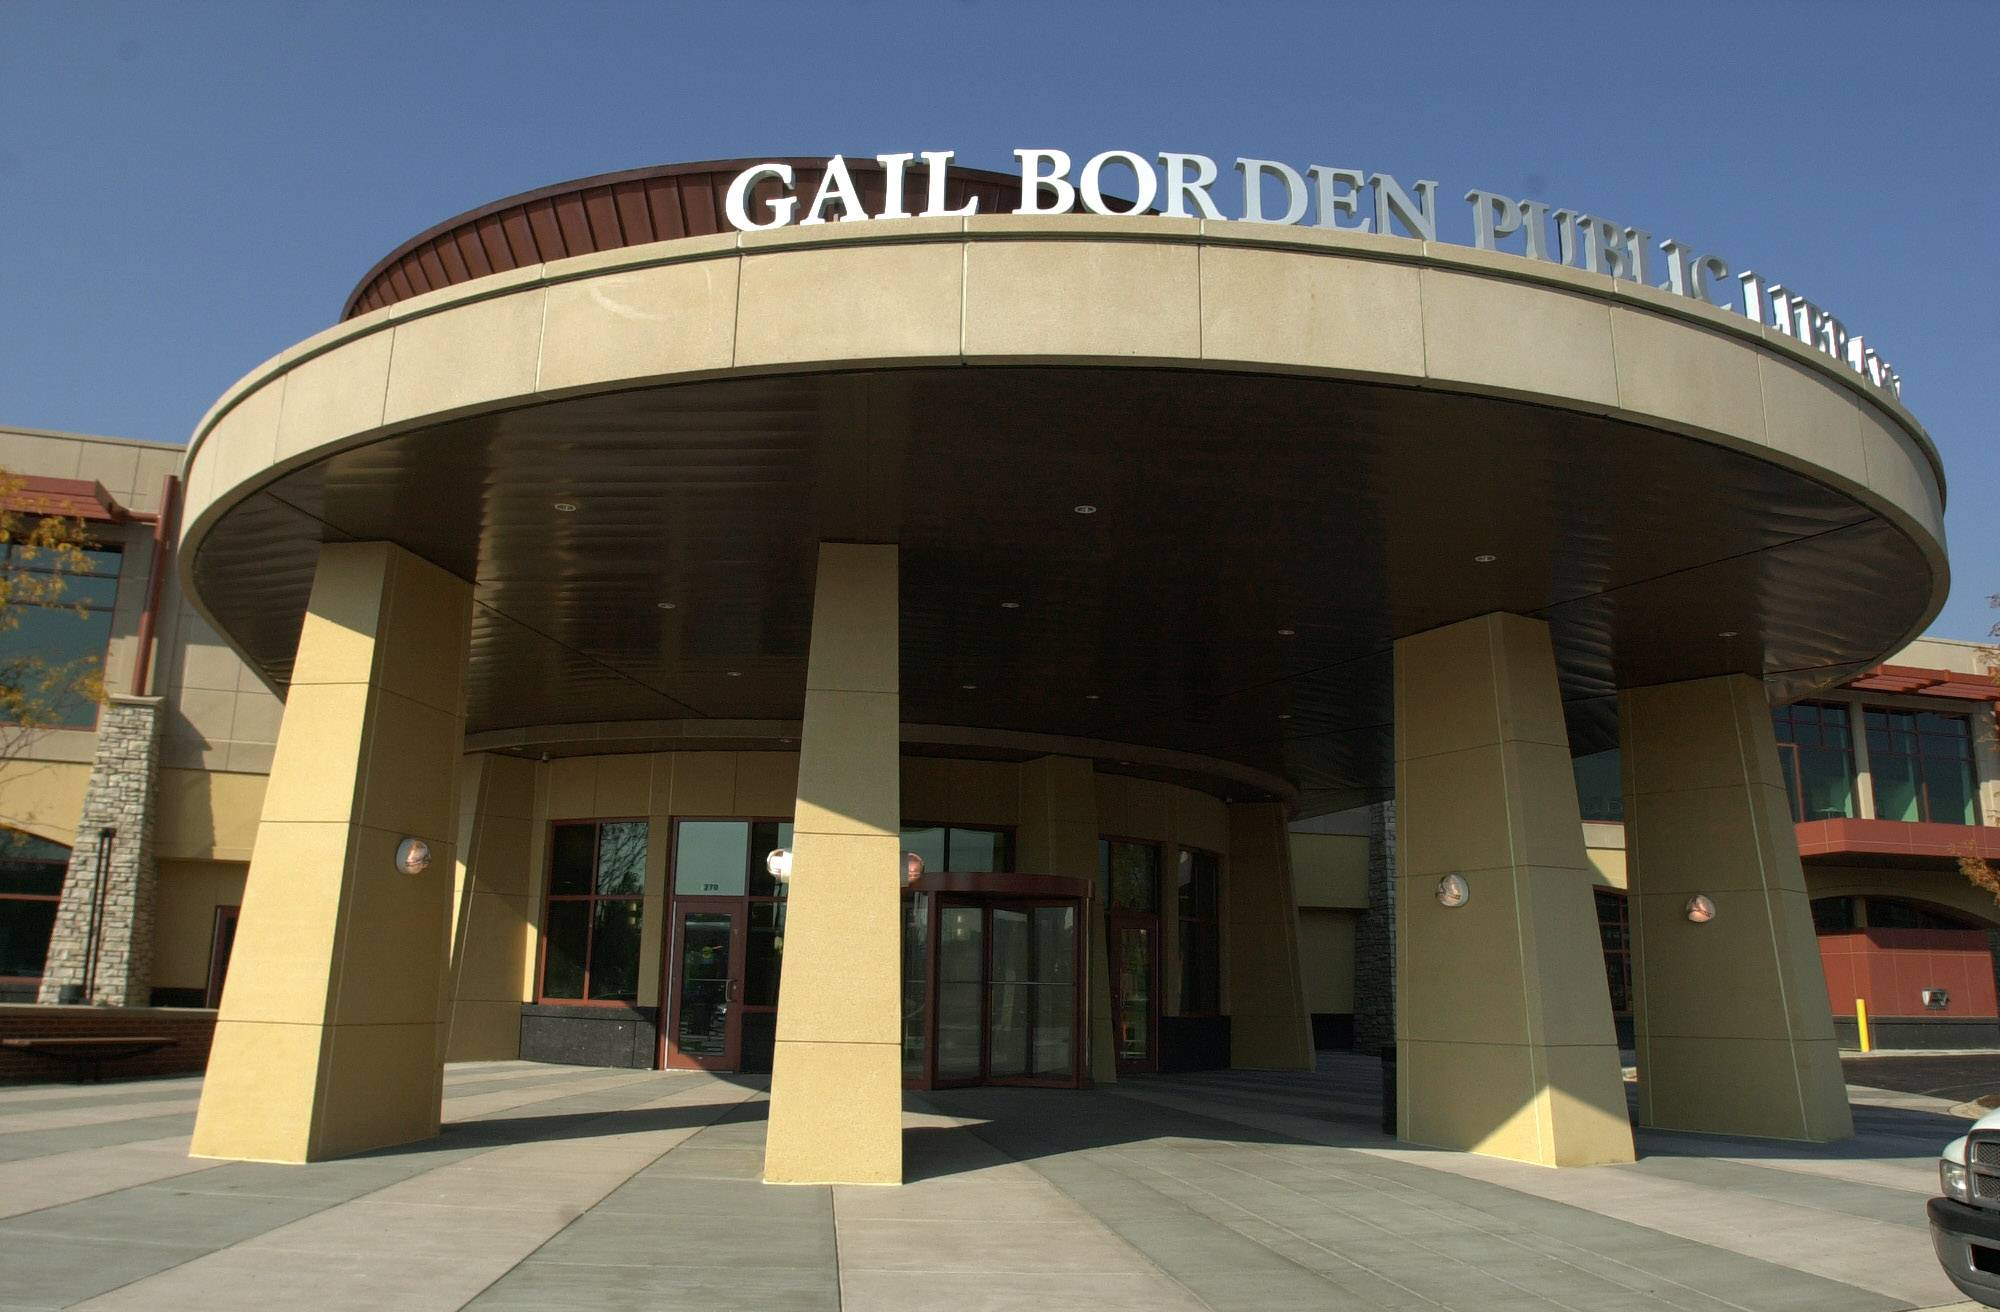 The Gail Borden Library Board in Elgin awarded bonuses to seven employees totaling more than $16,00 last year, according to the library's financial records.